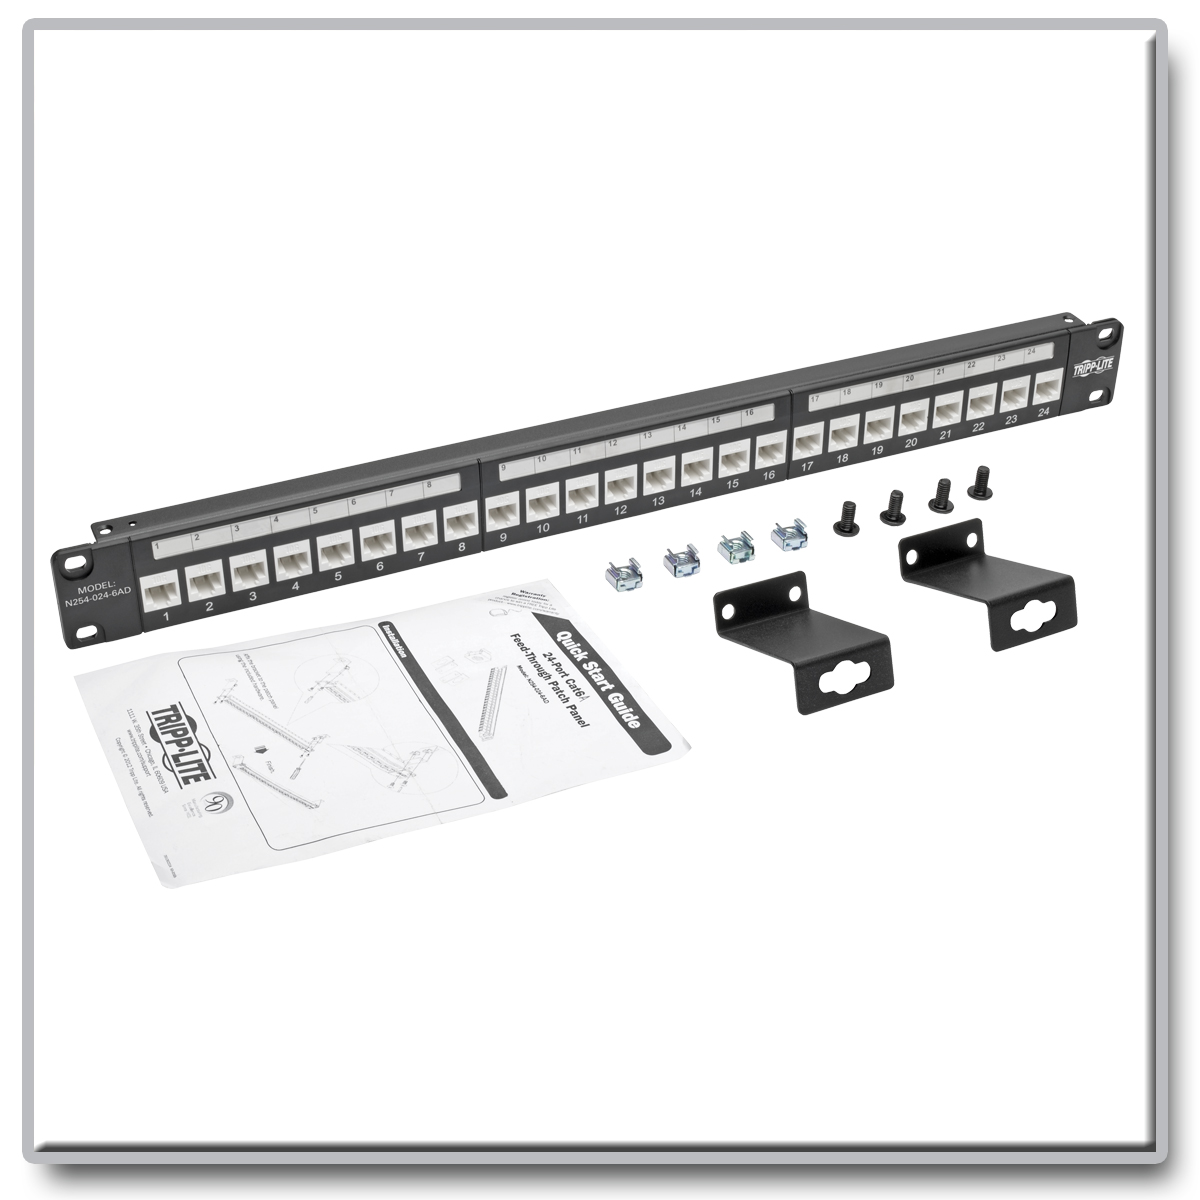 19inch Cat6 Utp Patch Panel T568a T568b Wiring 1ru 110 Termination Tripp Lite 24 Port Cat6a Feedthrough W Down Angled Ports Product Image